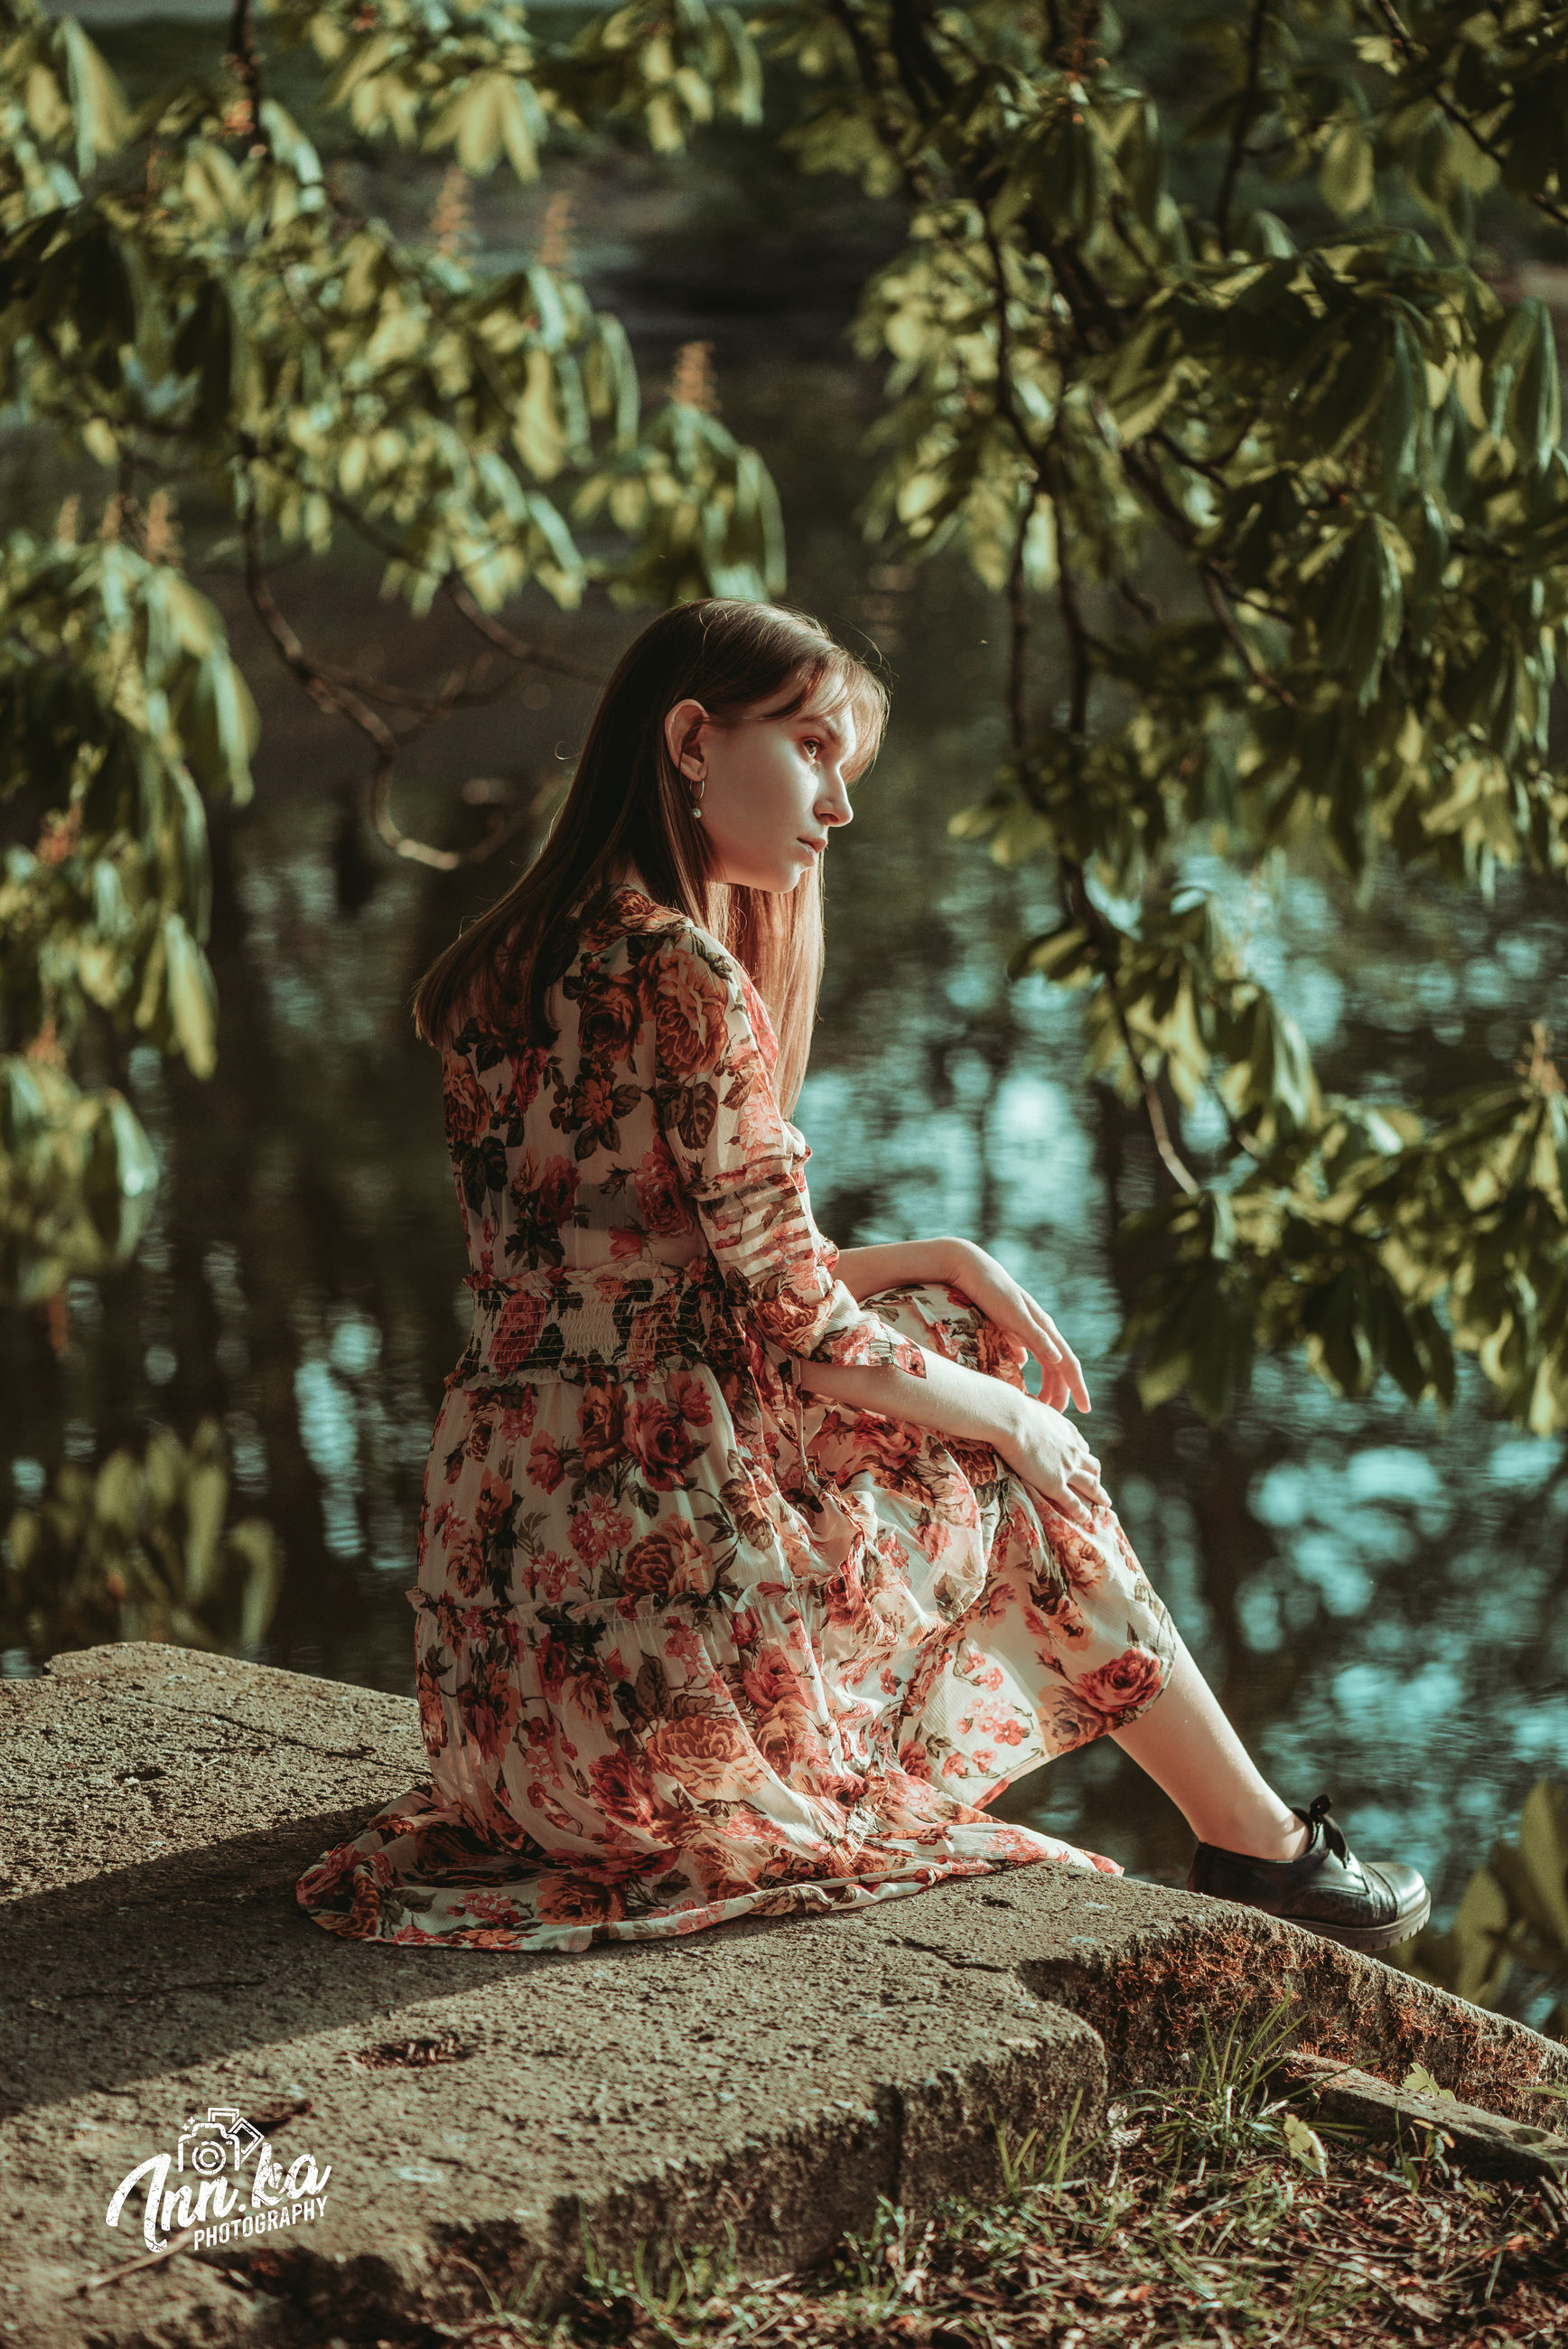 one person, tree, women, adult, autumn, dress, nature, plant, clothing, young adult, forest, fashion, spring, land, hairstyle, looking, sitting, outdoors, female, tranquility, plant part, beauty in nature, lifestyles, long hair, contemplation, elegance, leaf, gown, sunlight, portrait, photo shoot, brown hair, woodland, relaxation, full length